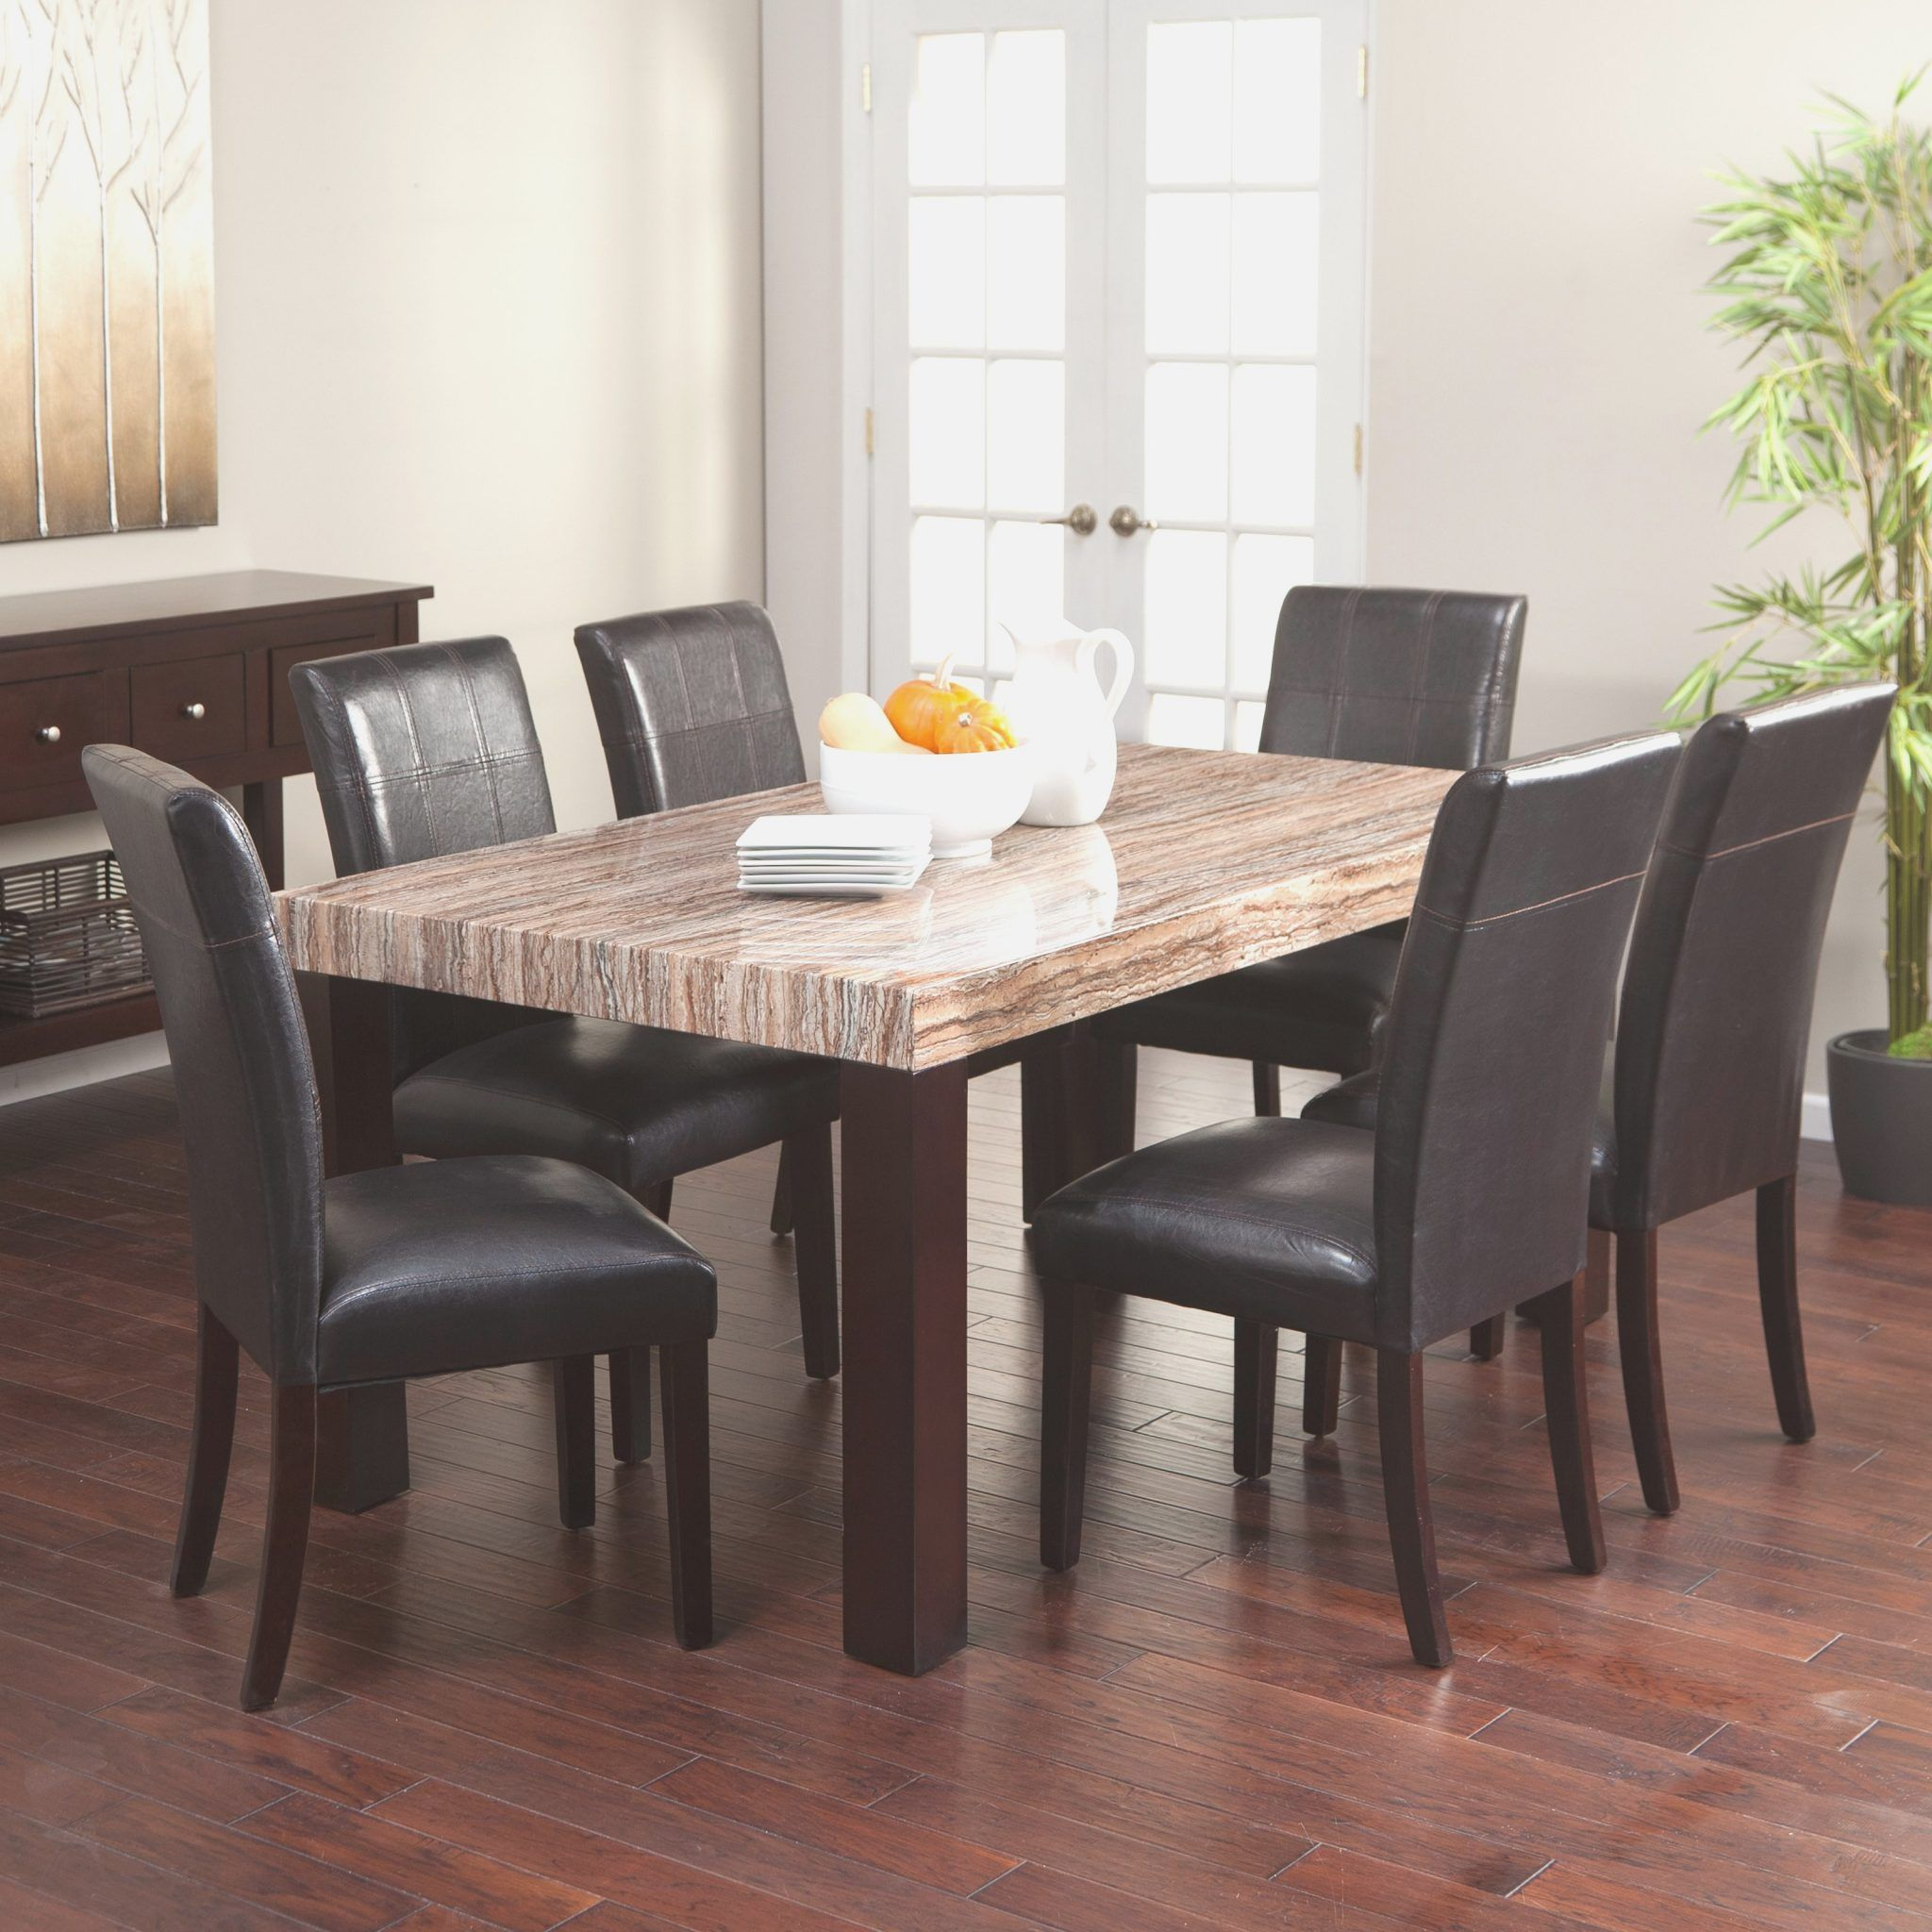 Folding dining table and chair set  Kitchen Table and Chair Sets  folding kitchen table and chair sets